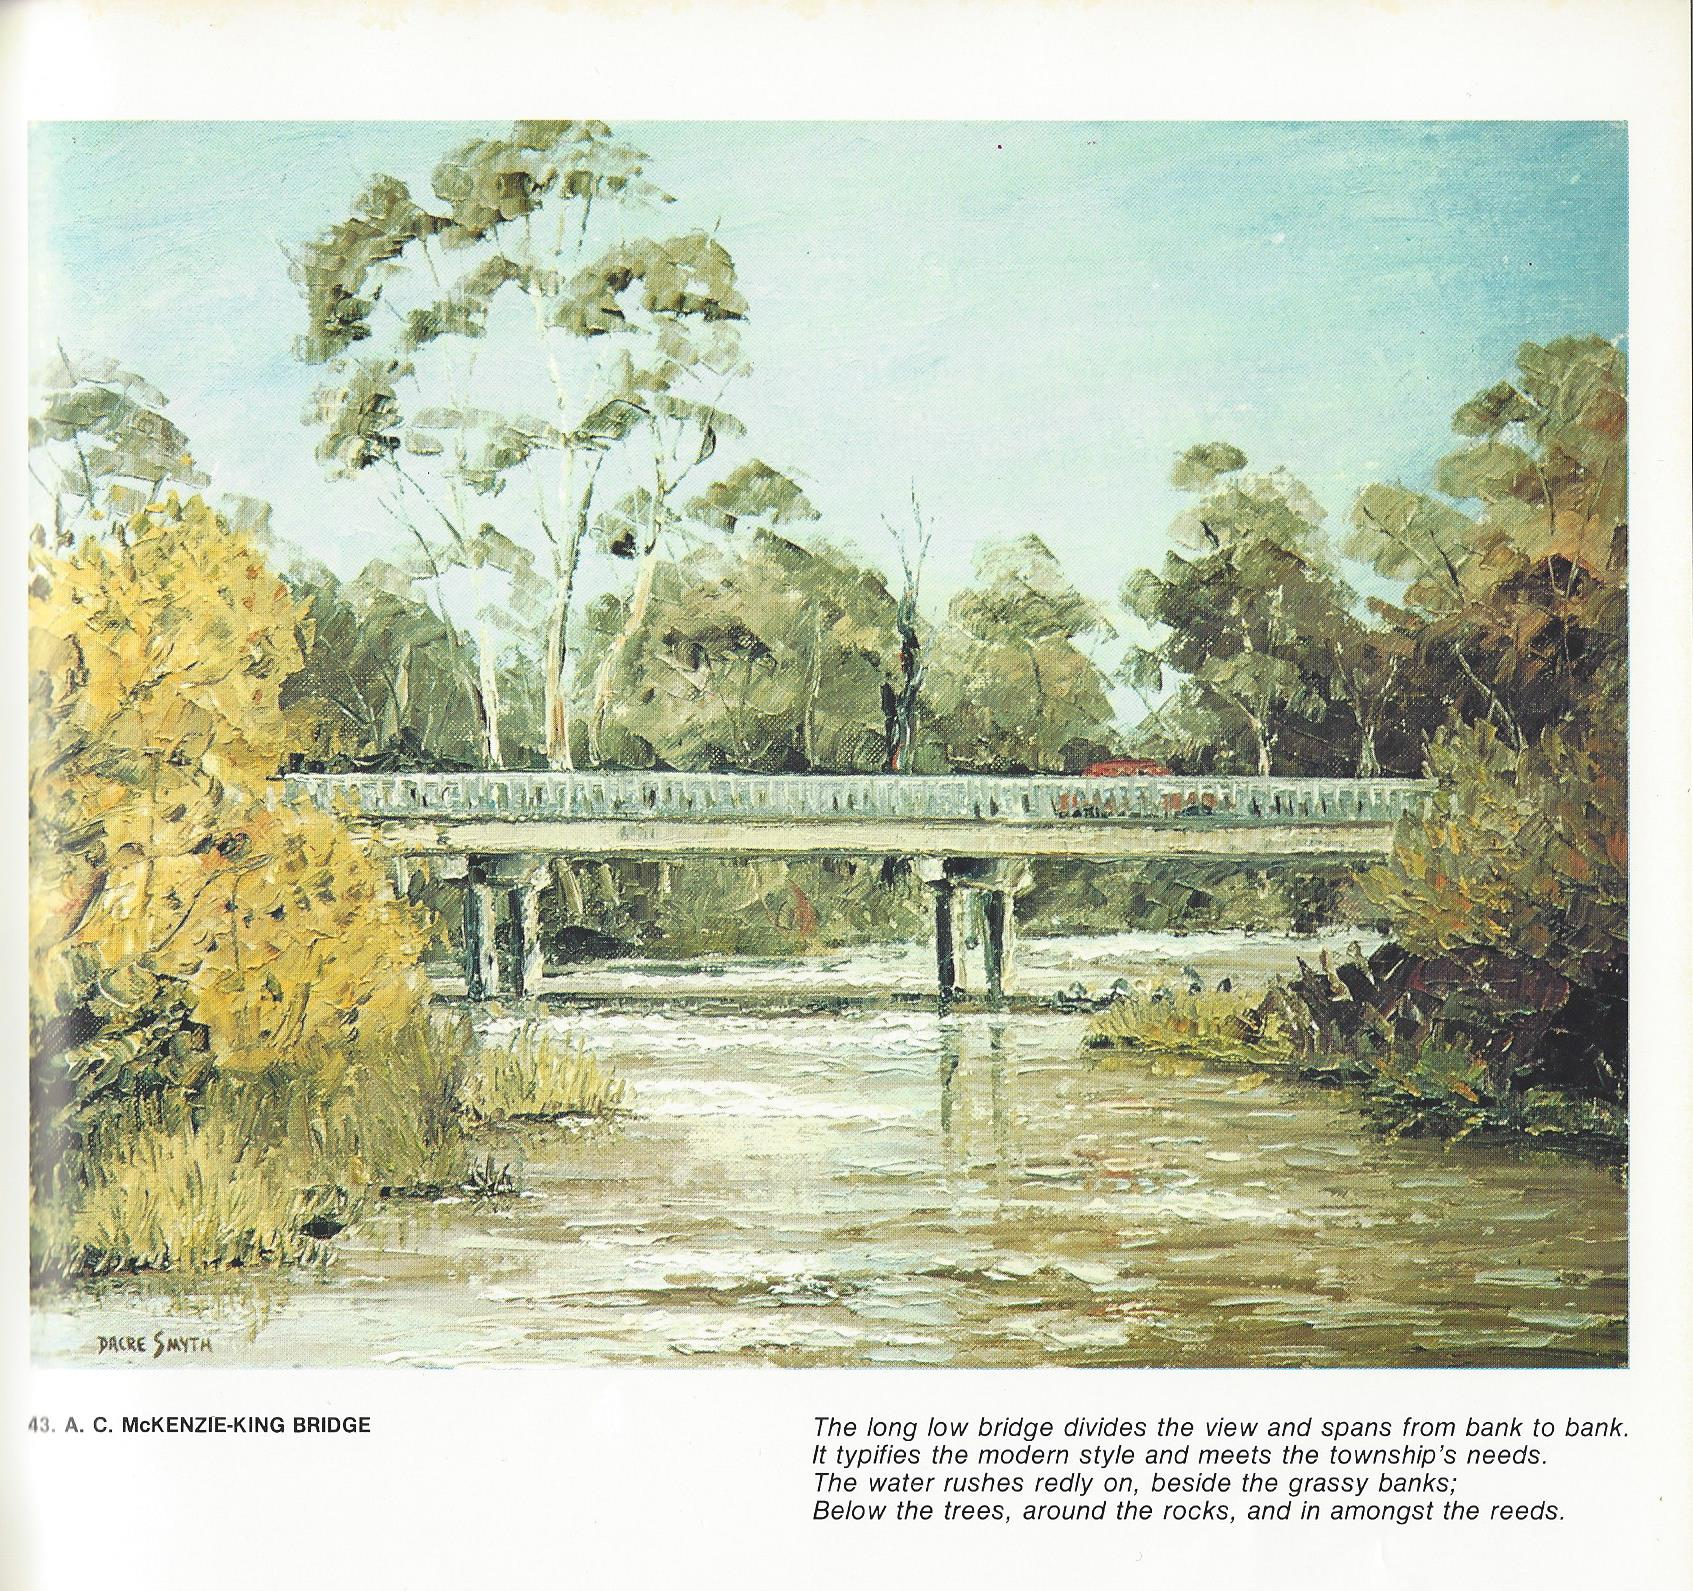 43. A.C. McKenzie-King Bridge